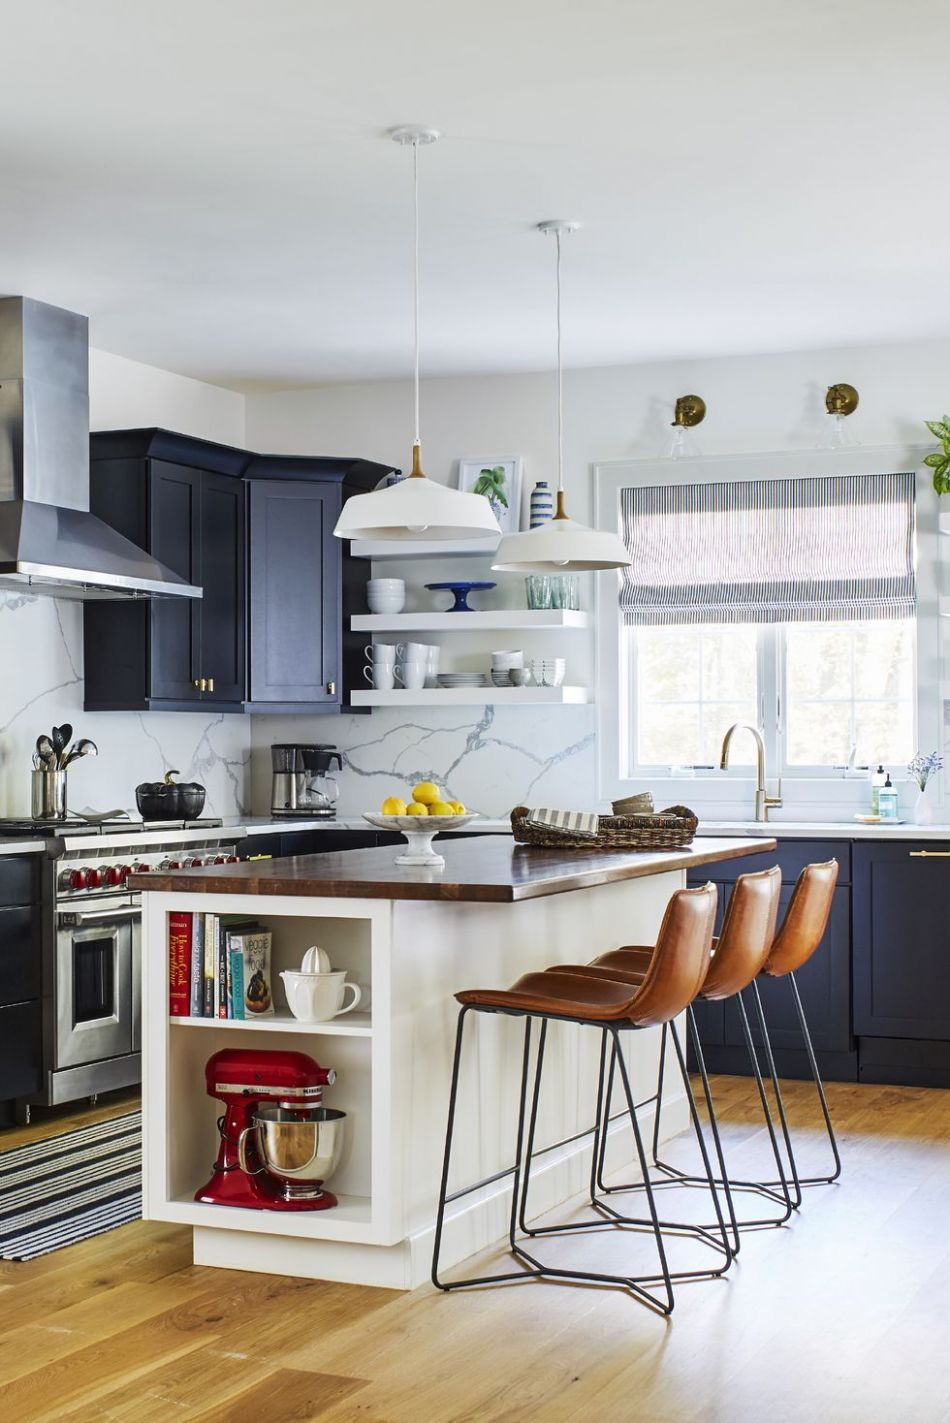 8+ Best Small Kitchen Design Ideas - Tiny Kitchen Decorating